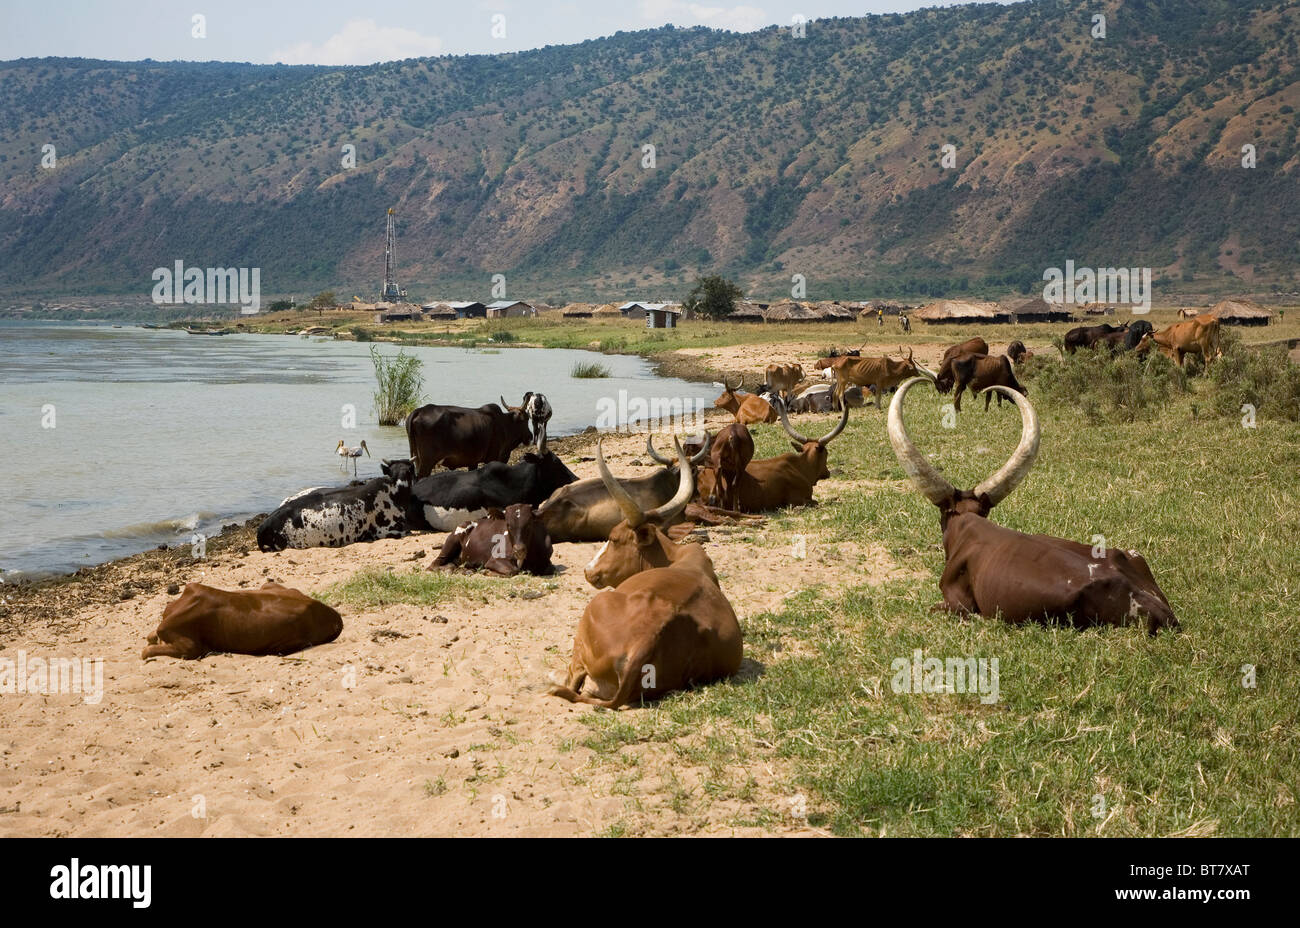 Herd of Ankole cattle on the shore of Lake Albert with oil exploration rig in background, Northern Uganda, East - Stock Image